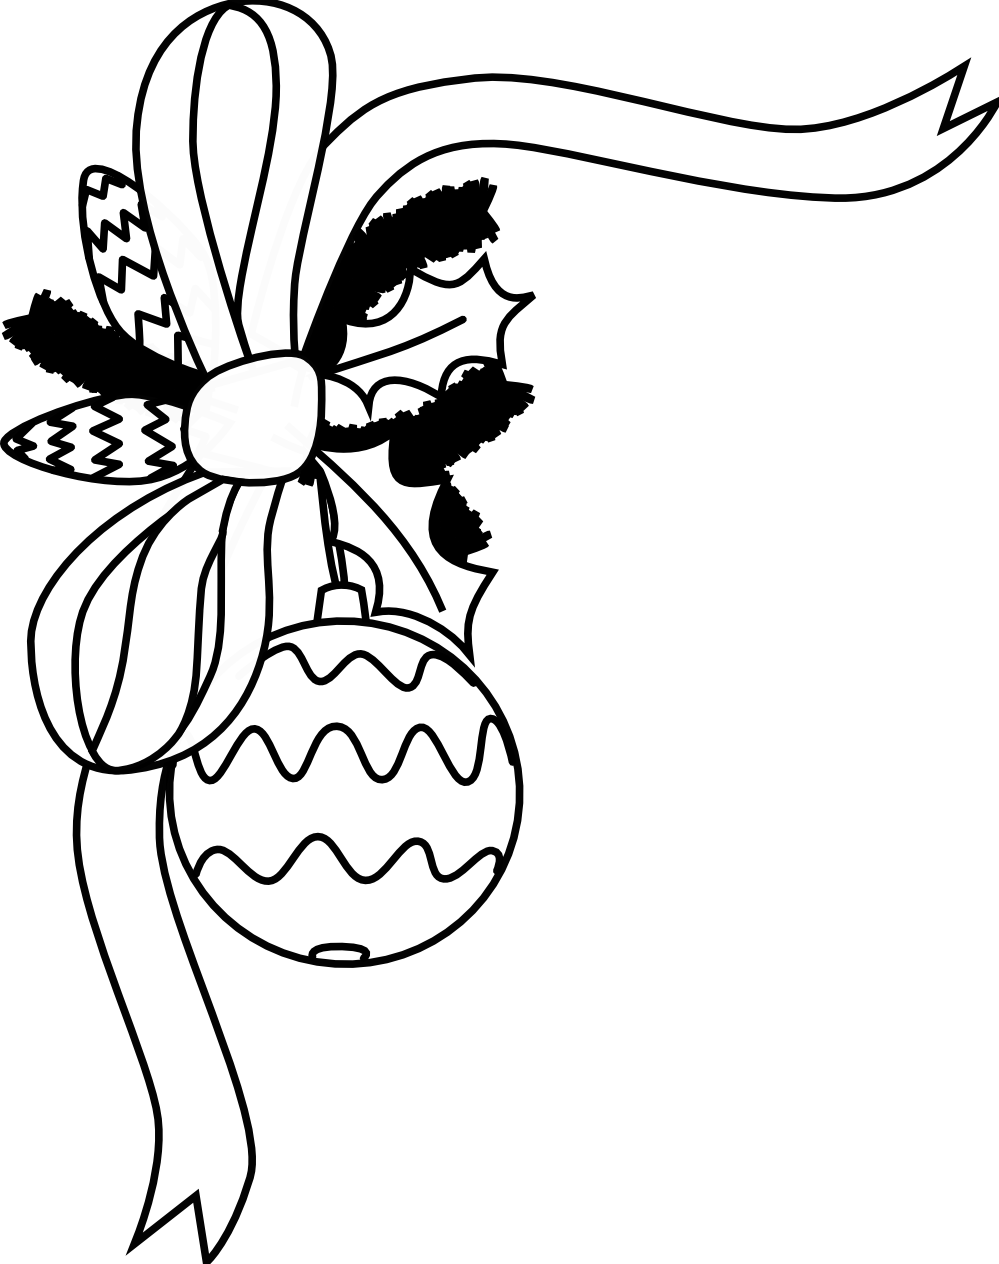 coloring christmas clipart black and white christmas clipart black and white clipartioncom black white christmas and clipart coloring